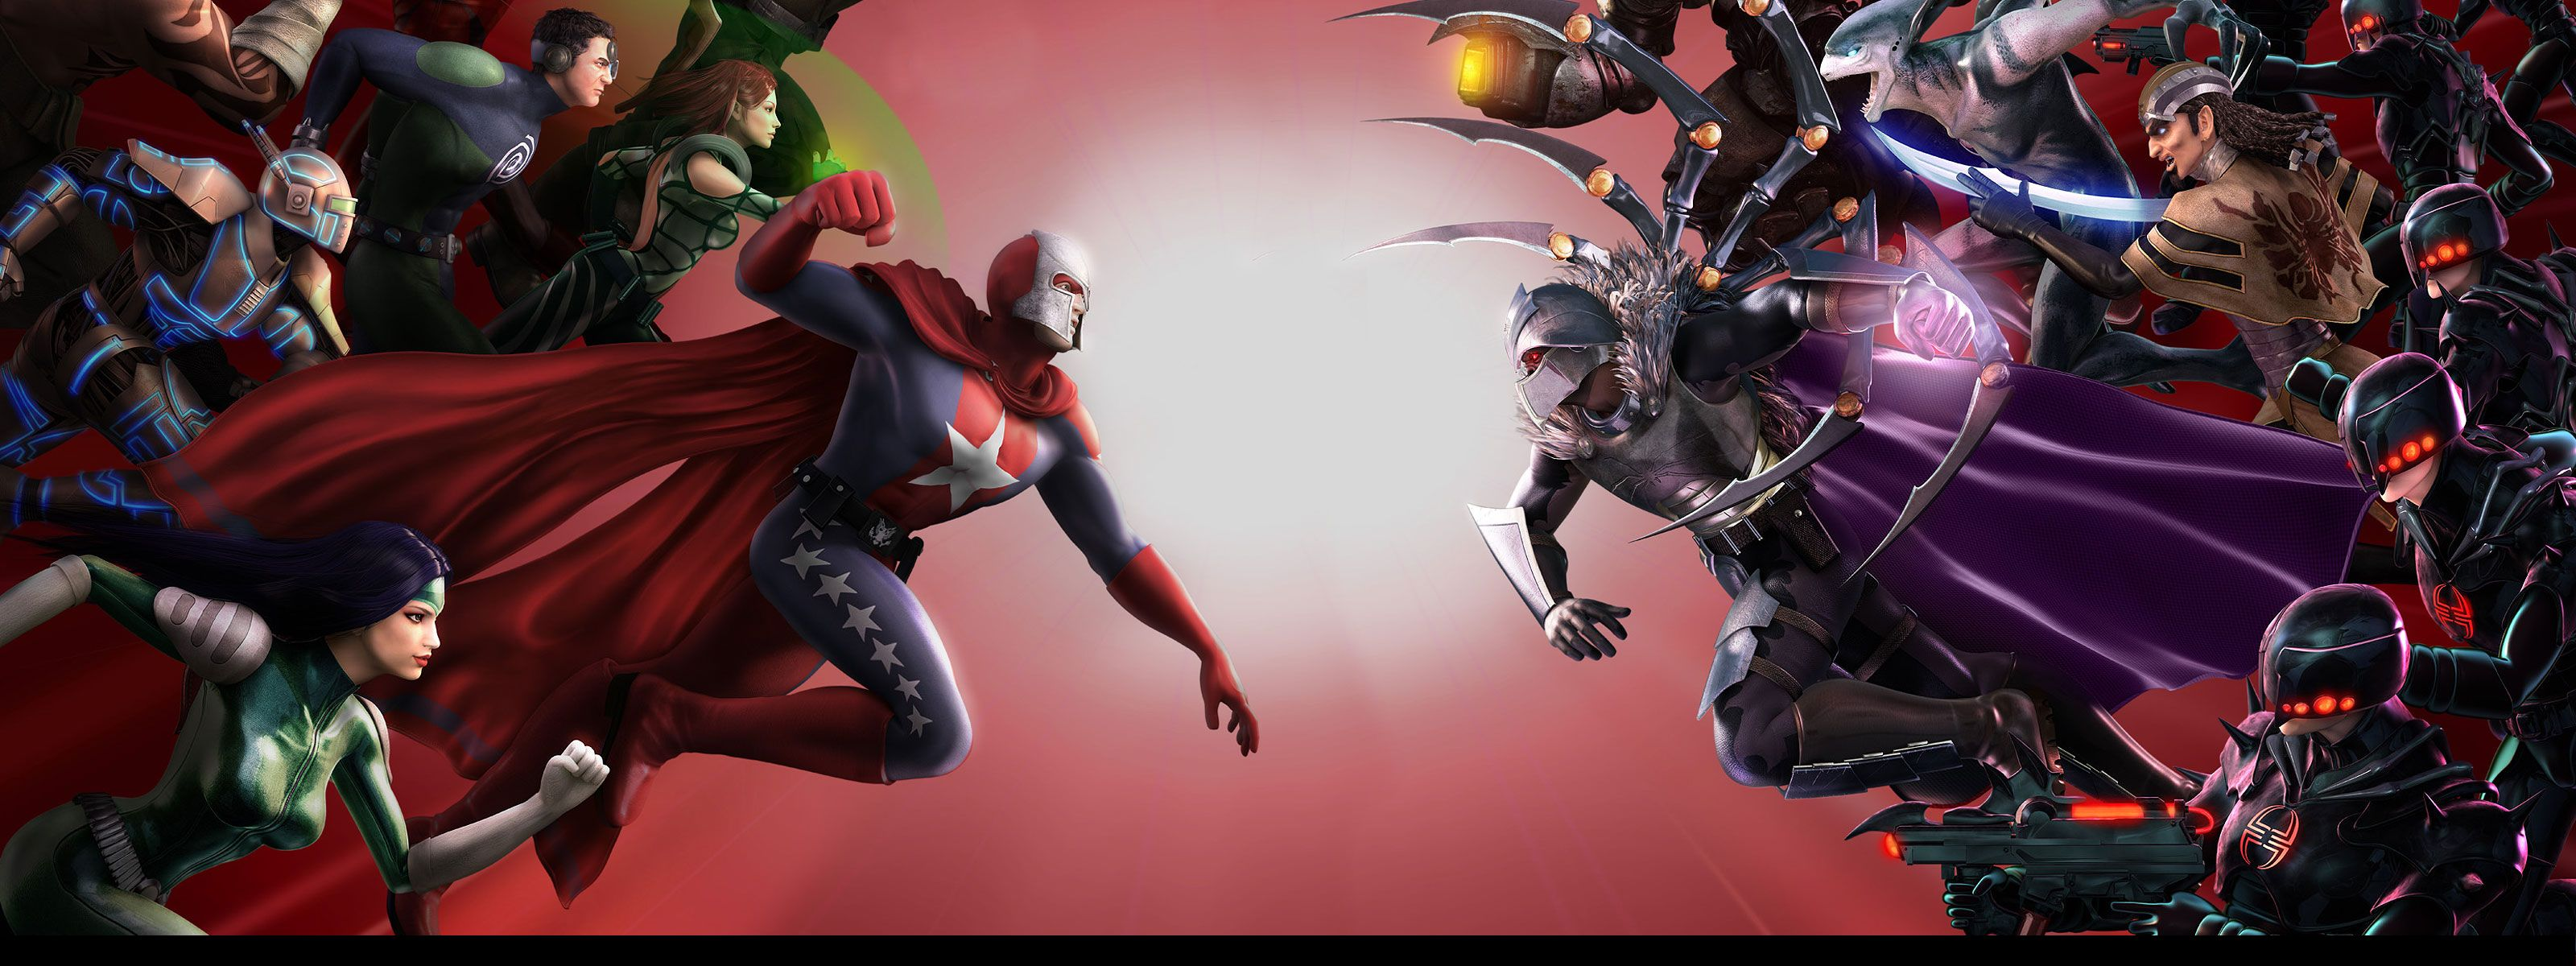 City Of Heroes HD Wallpaper   Background Image   3200x1200 ...